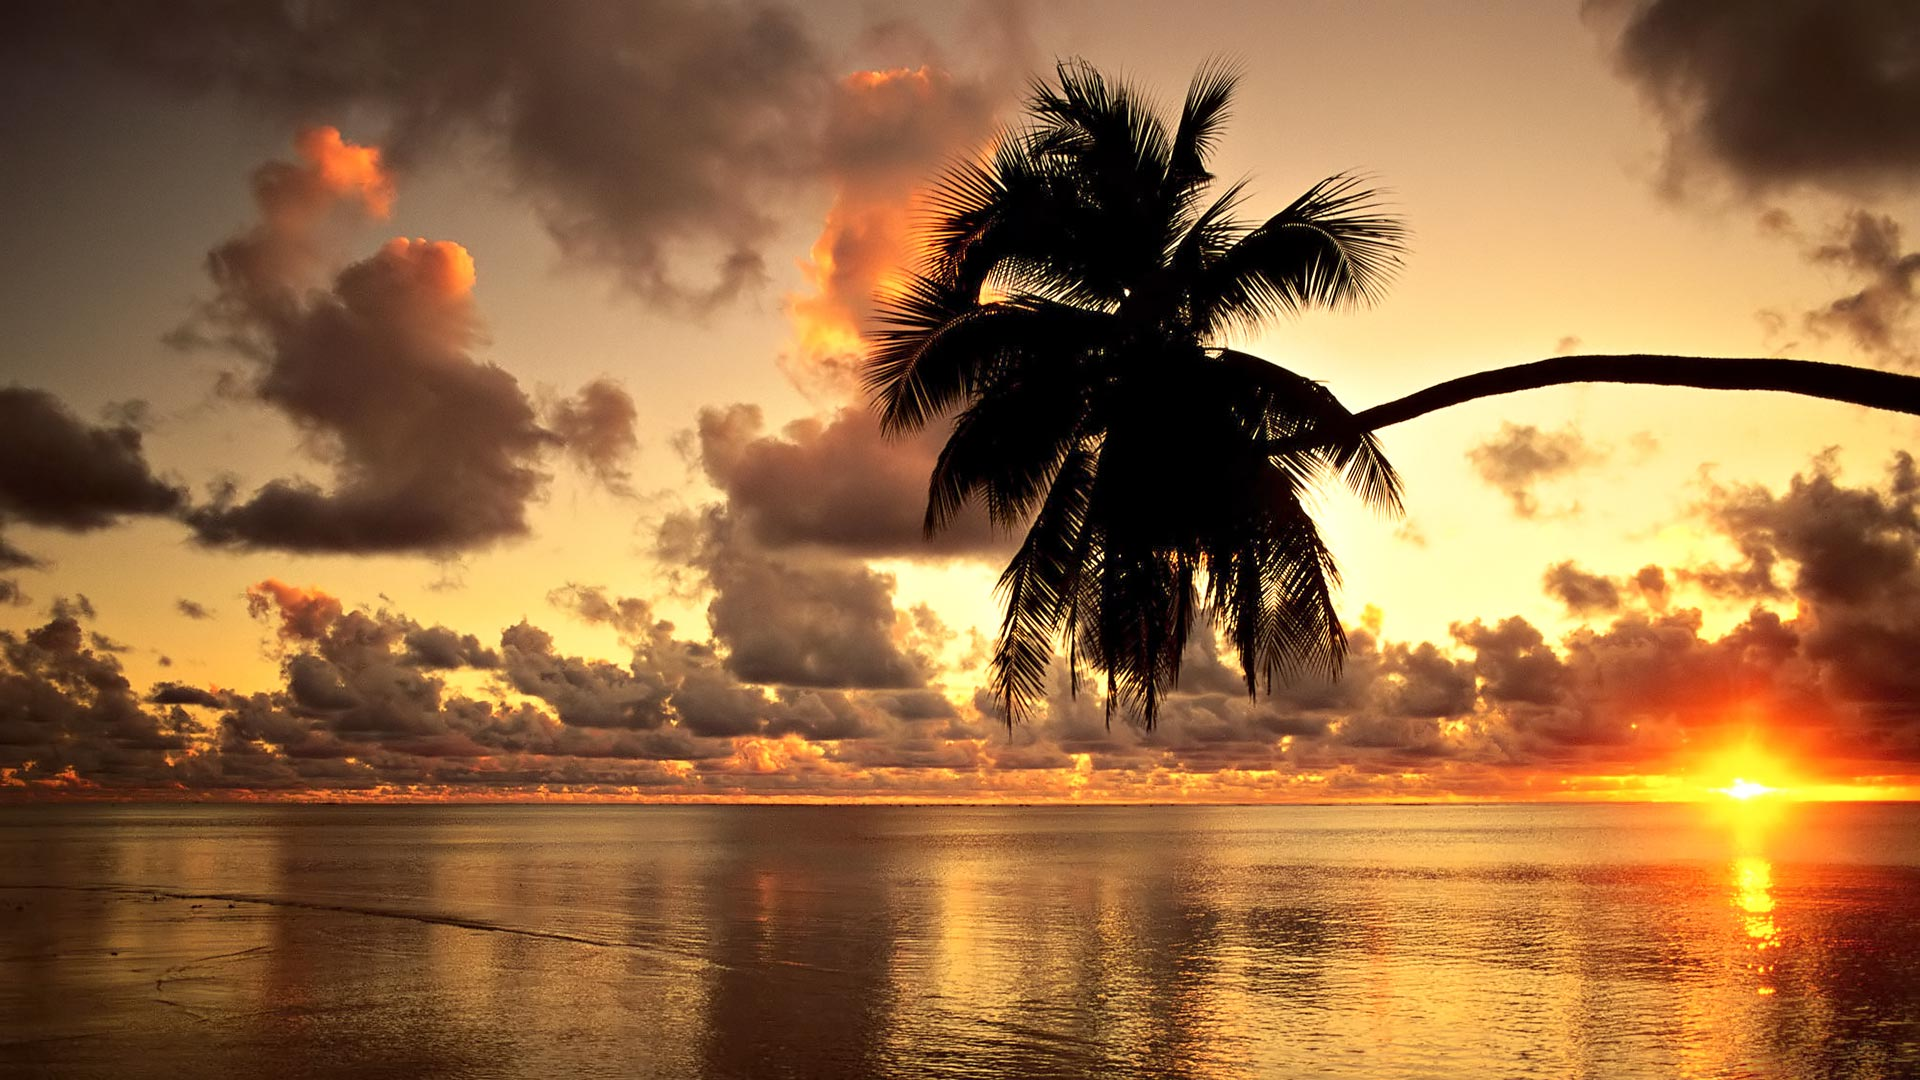 Hawaii Sunset Beach Wallpaper 12984 Wallpaper WallpaperLepi 1920x1080